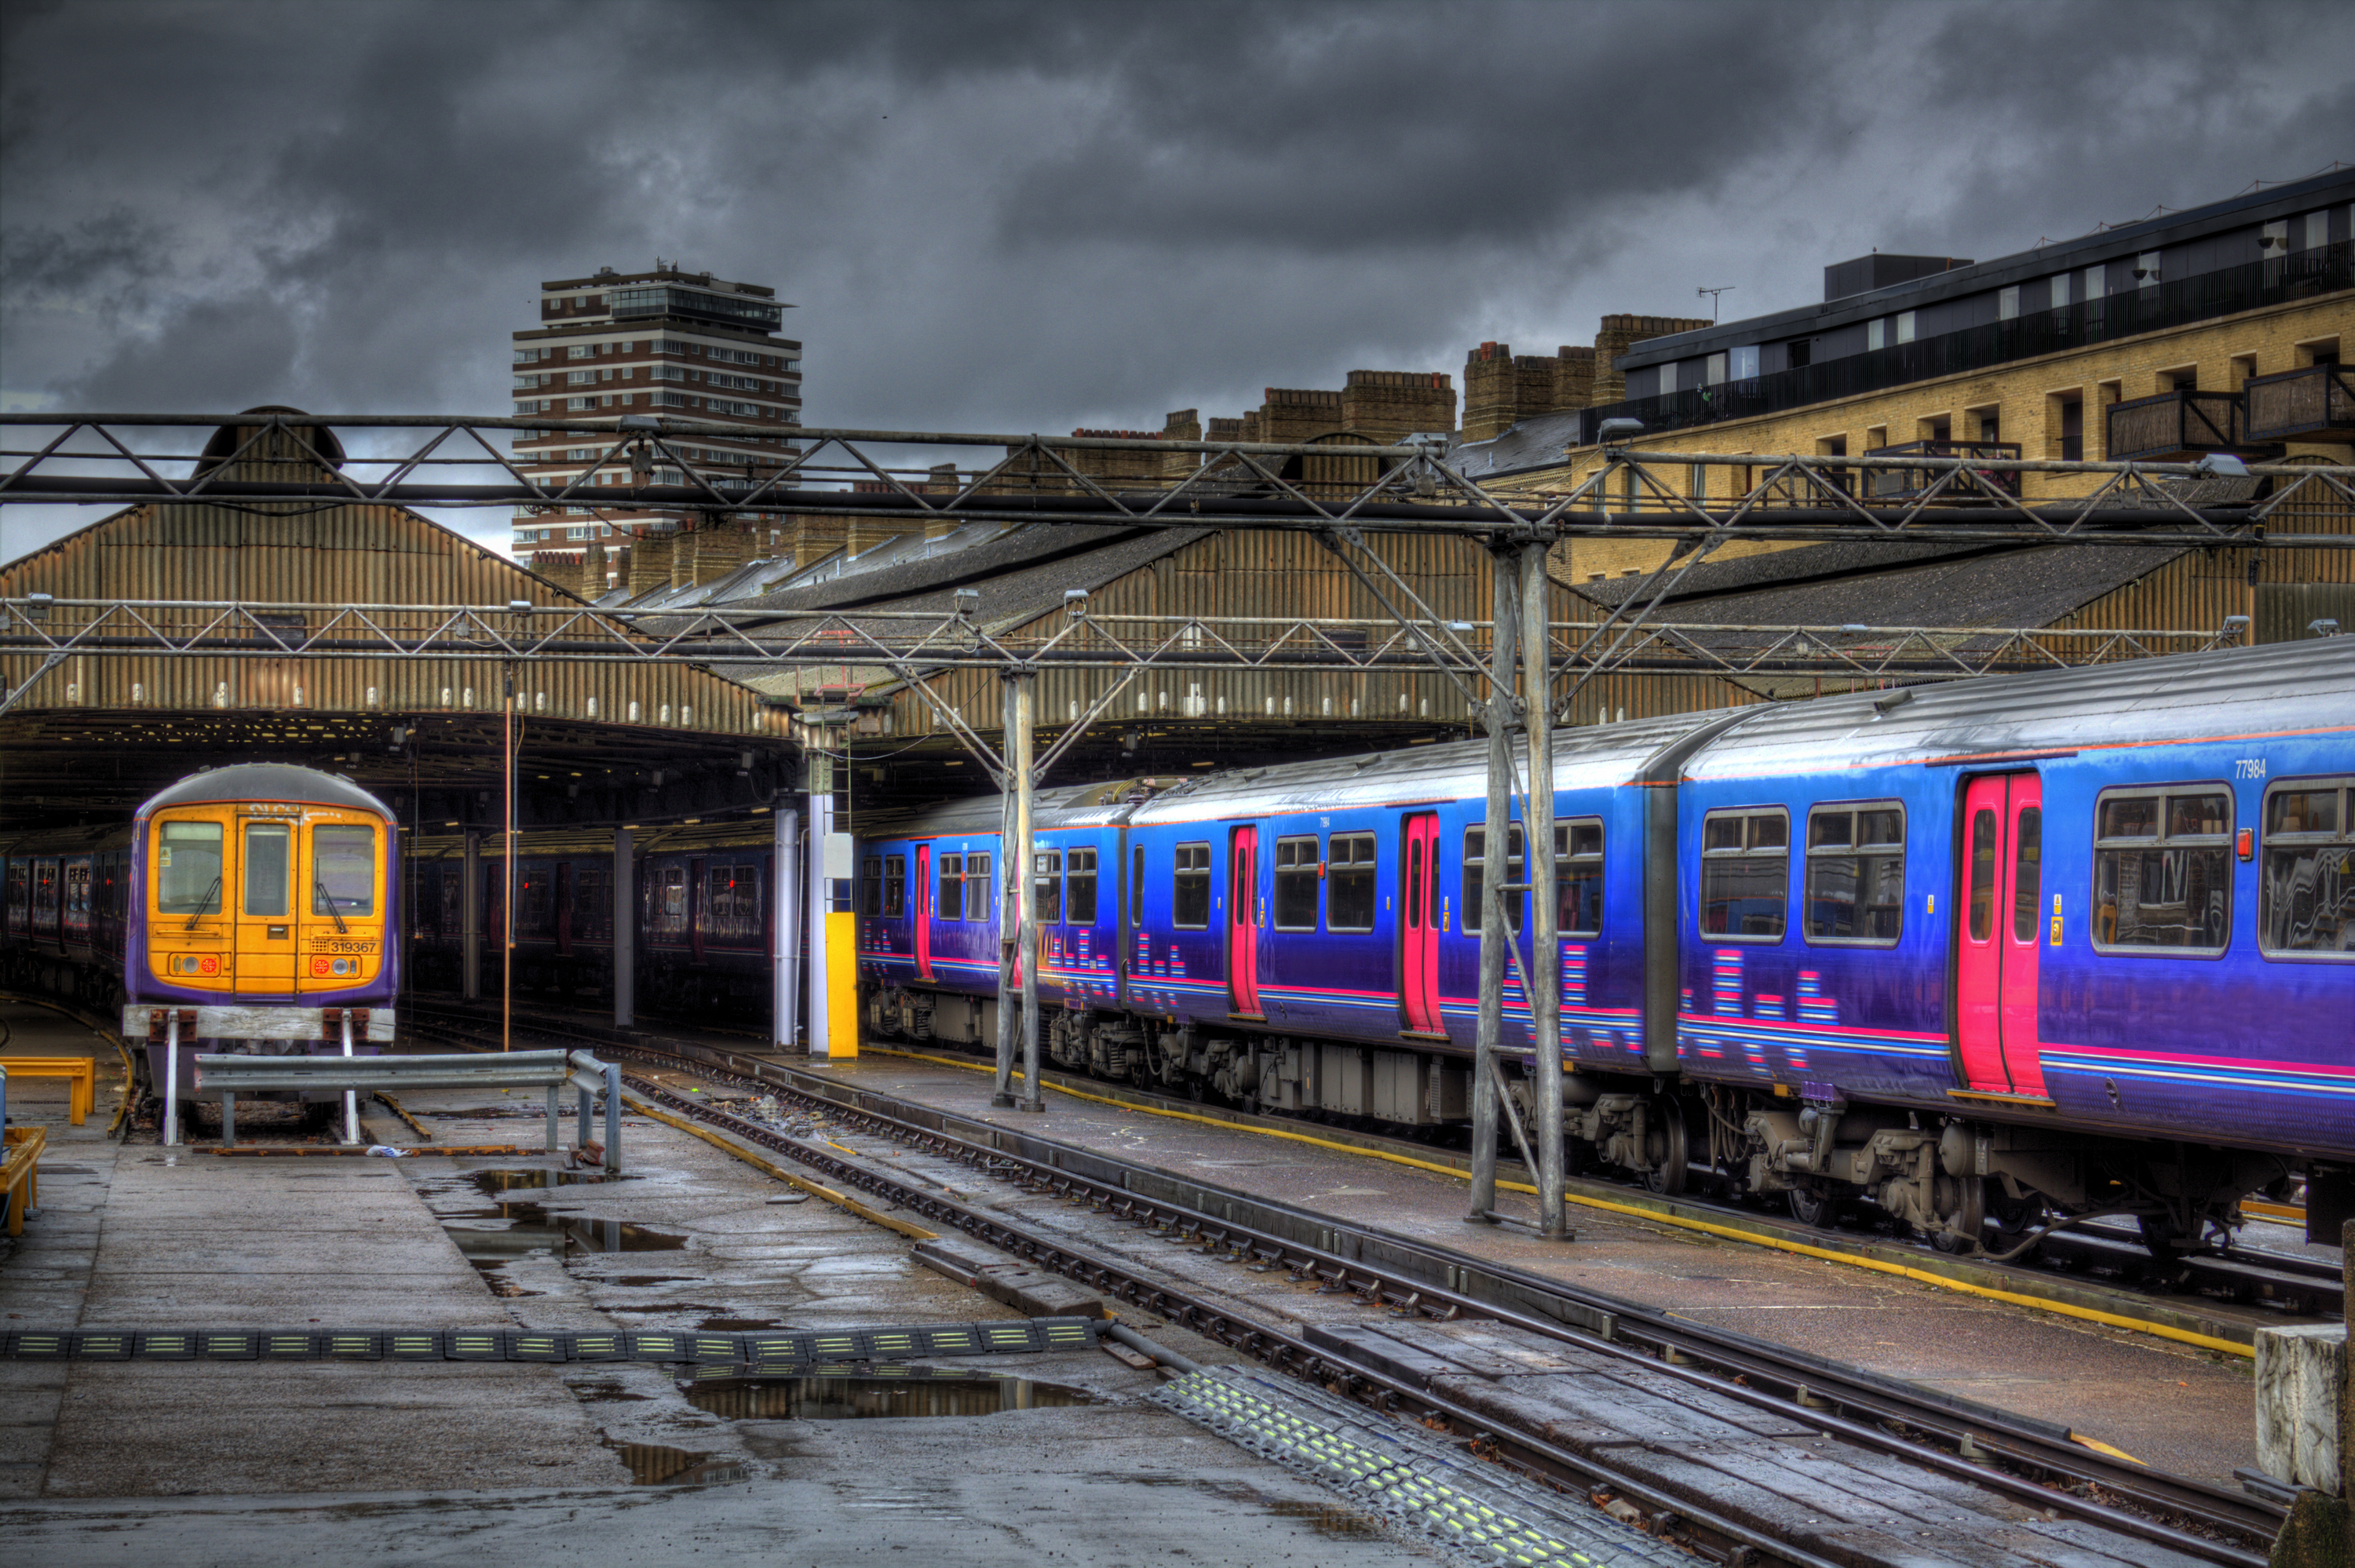 London-Train-Station-on-Stormy-Day-From-Shutterstock